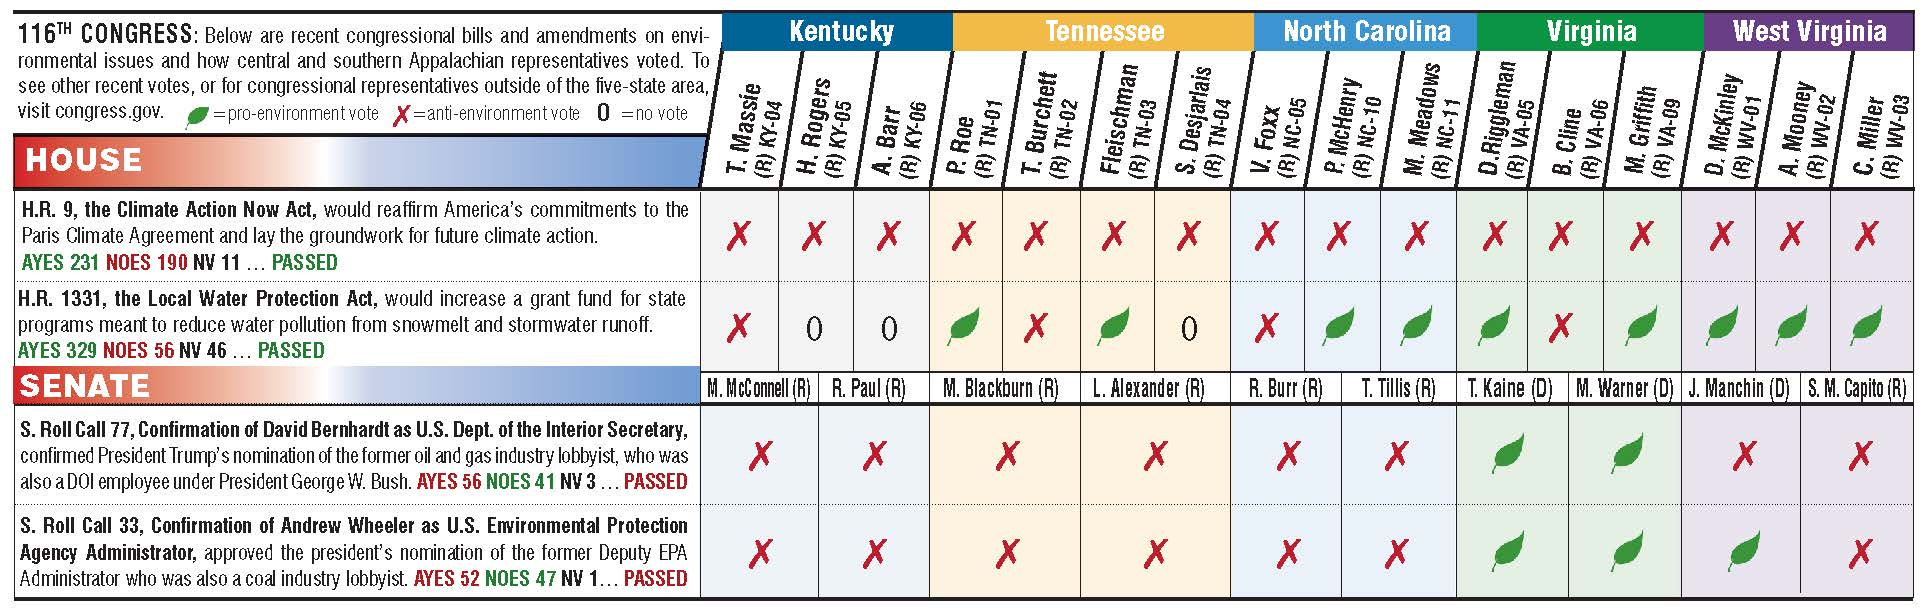 Chart showing how Appalachian legislators voted in April and May 2019.